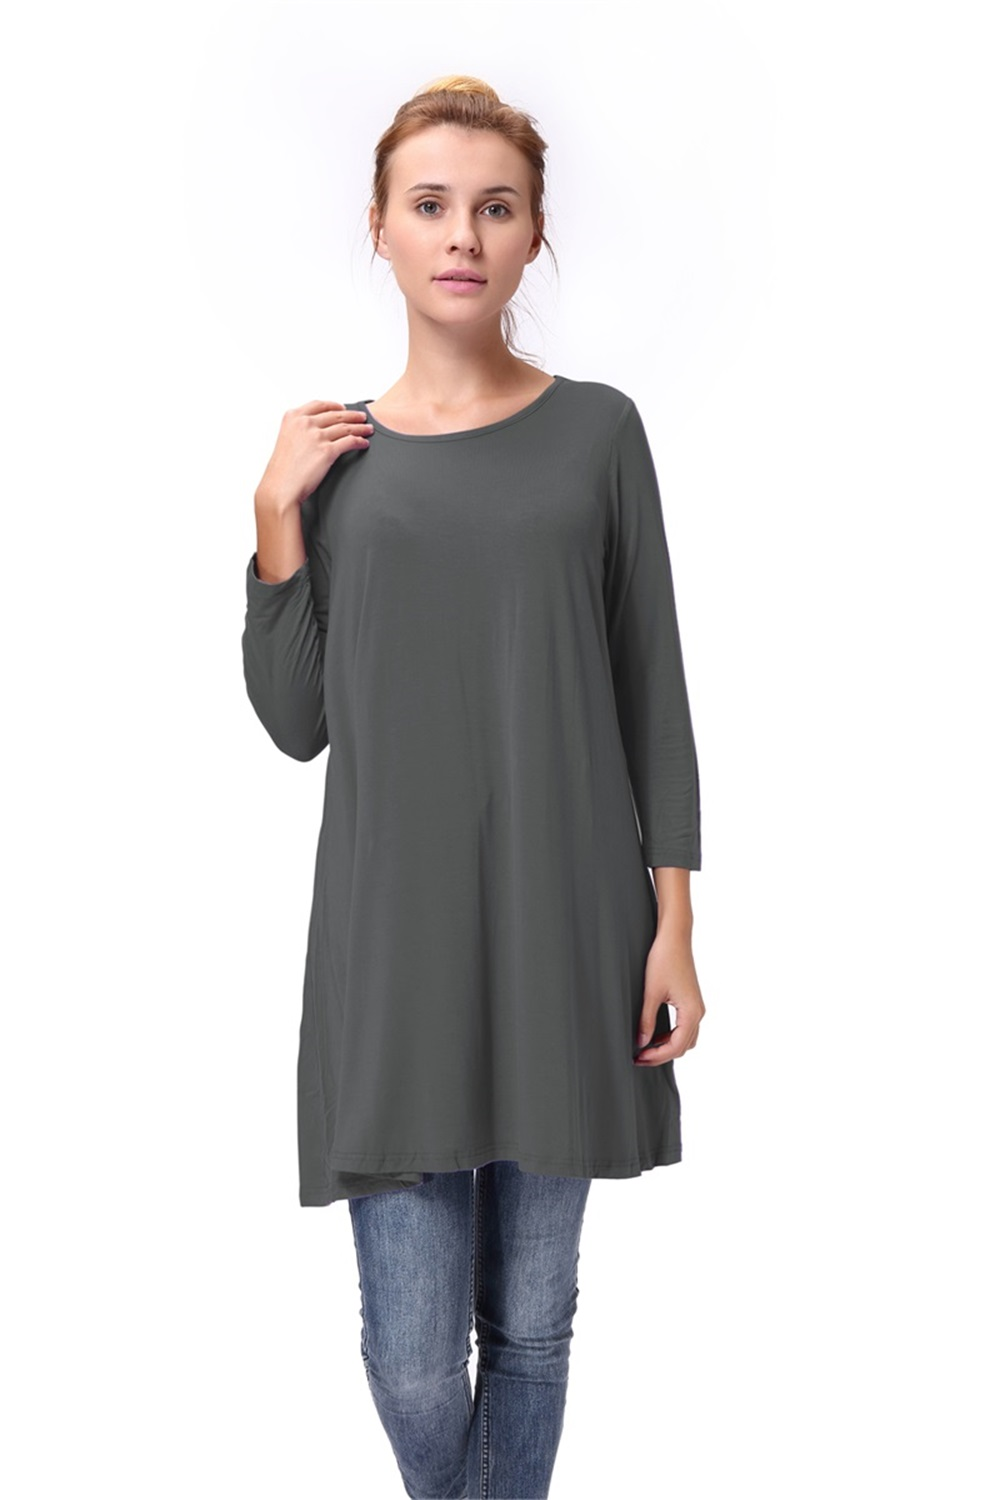 Women-Casual-Round-Neck-3-4-Long-Sleeve-Trapeze-Tunic-Top-Lady-Loose-Fit-Dress thumbnail 27